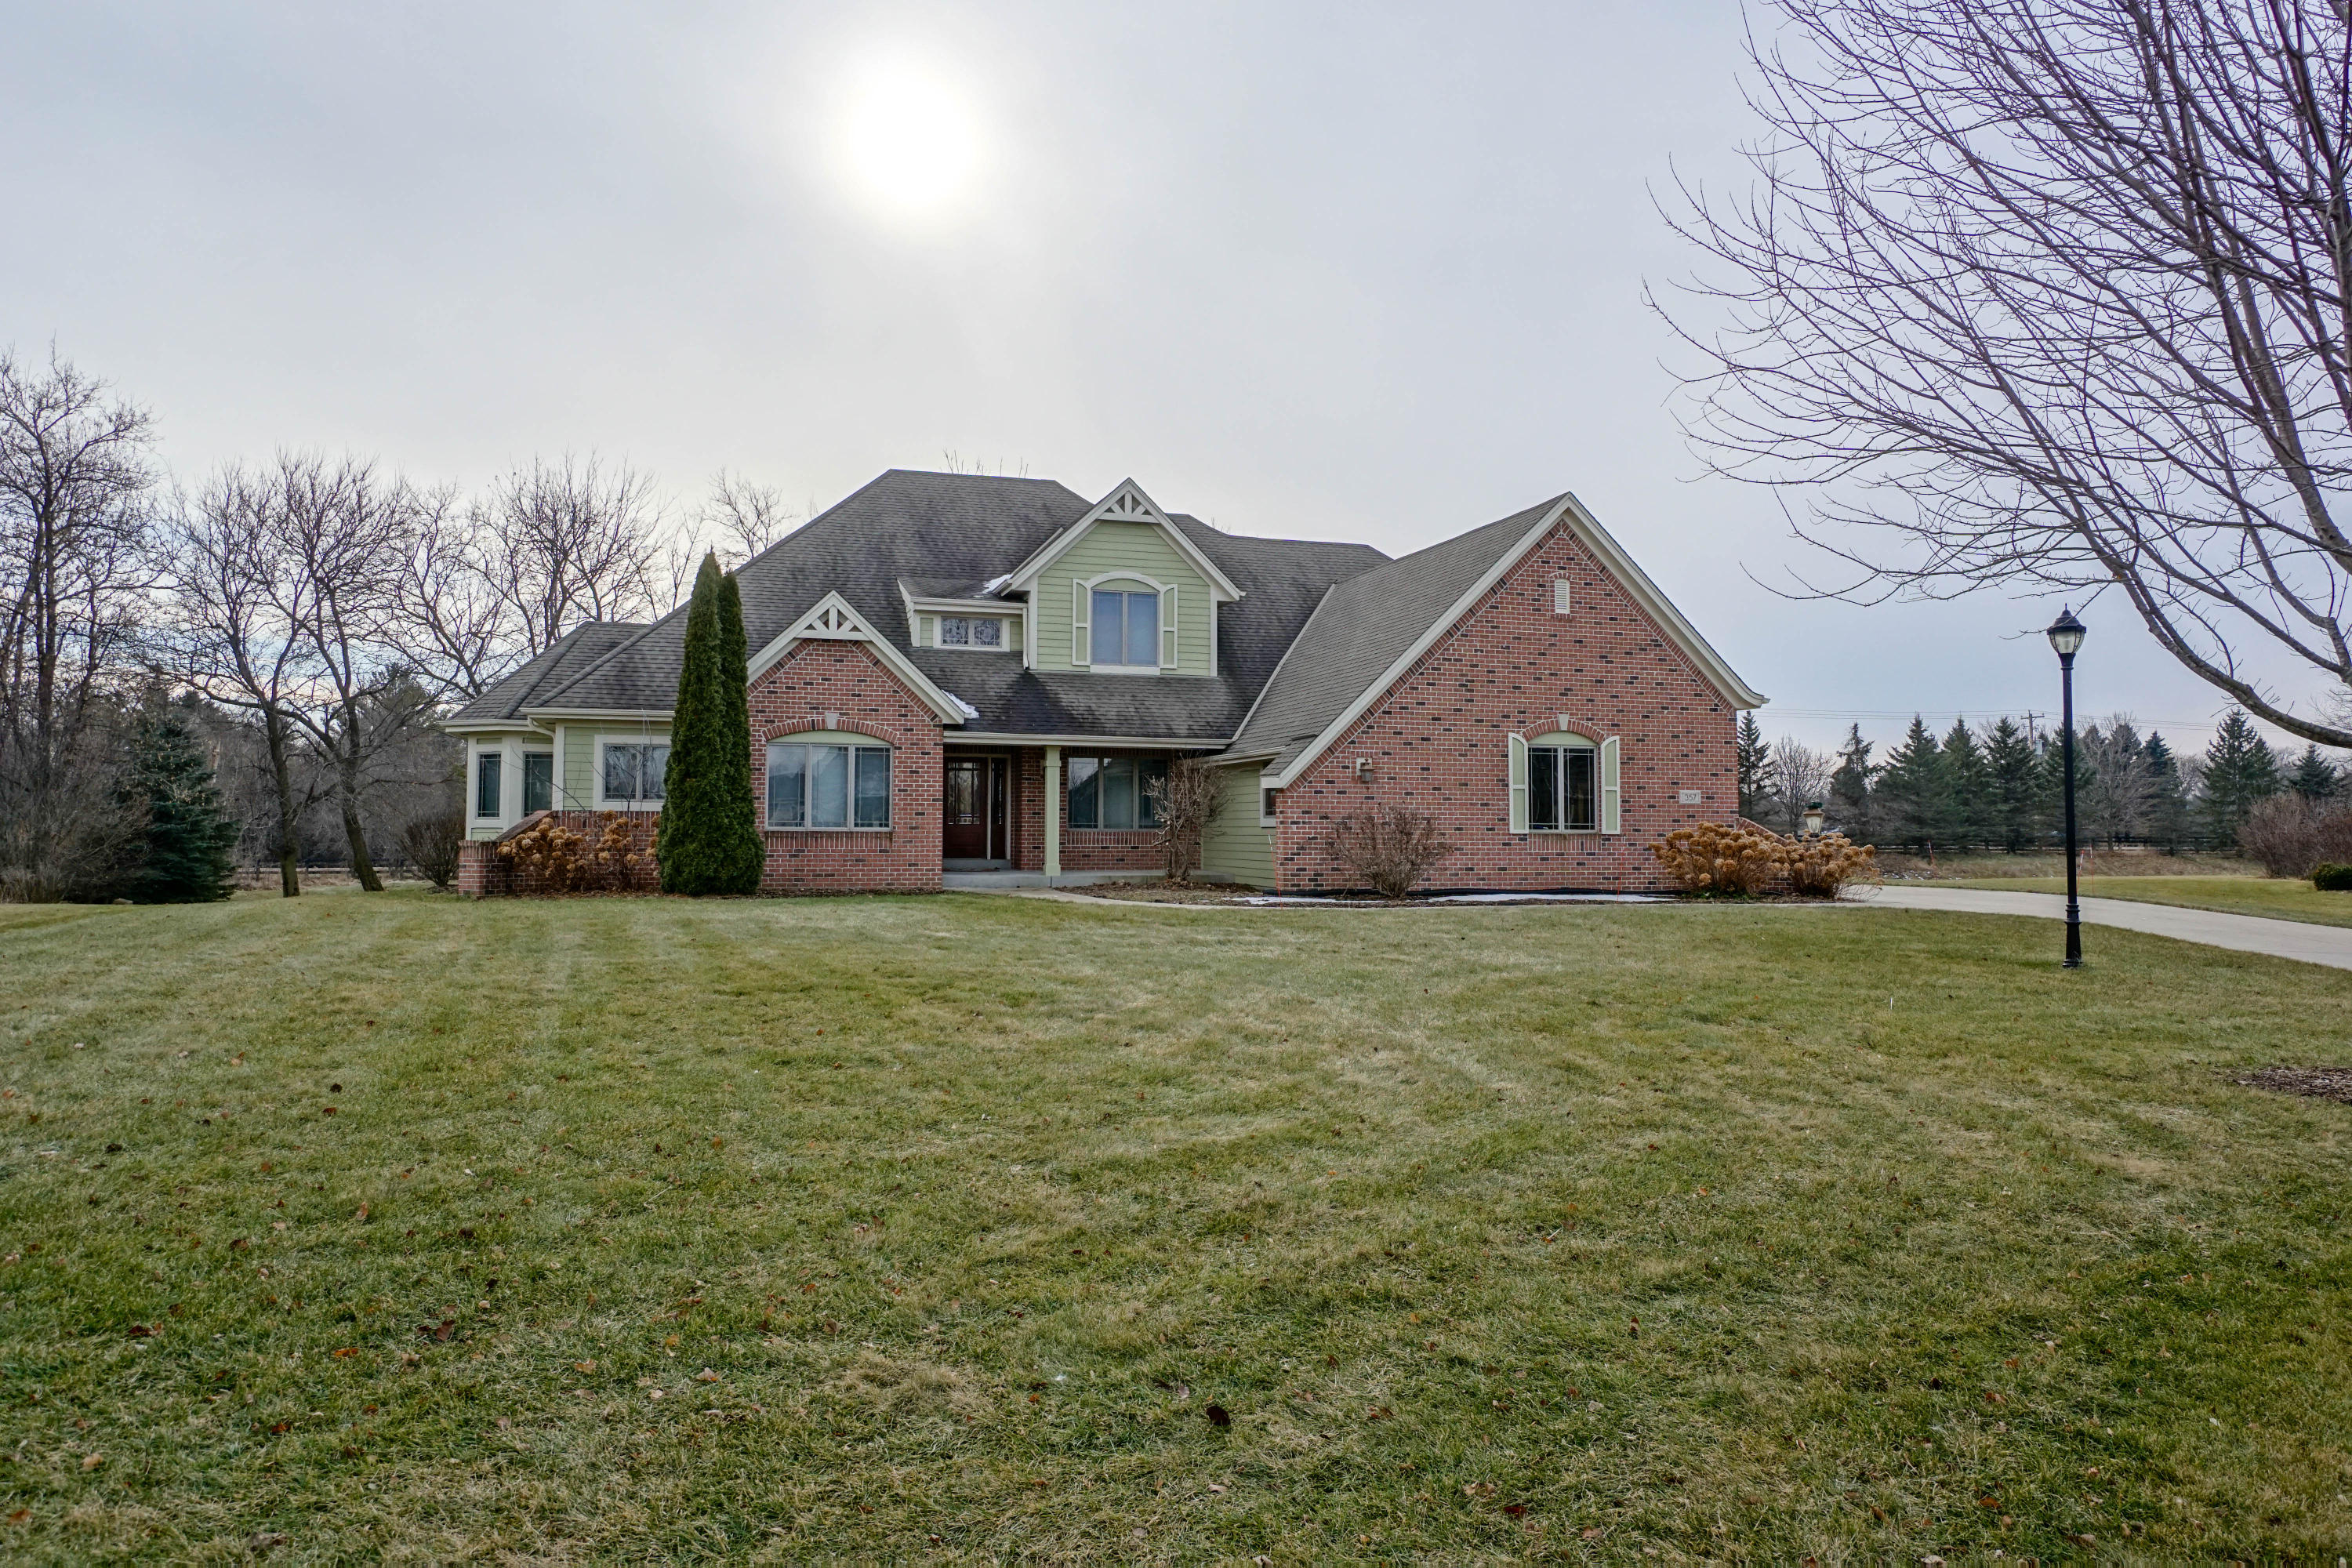 357 Switch Grass Ct, Hartland, Wisconsin 53029, 5 Bedrooms Bedrooms, 14 Rooms Rooms,4 BathroomsBathrooms,Single-Family,For Sale,Switch Grass Ct,1672784